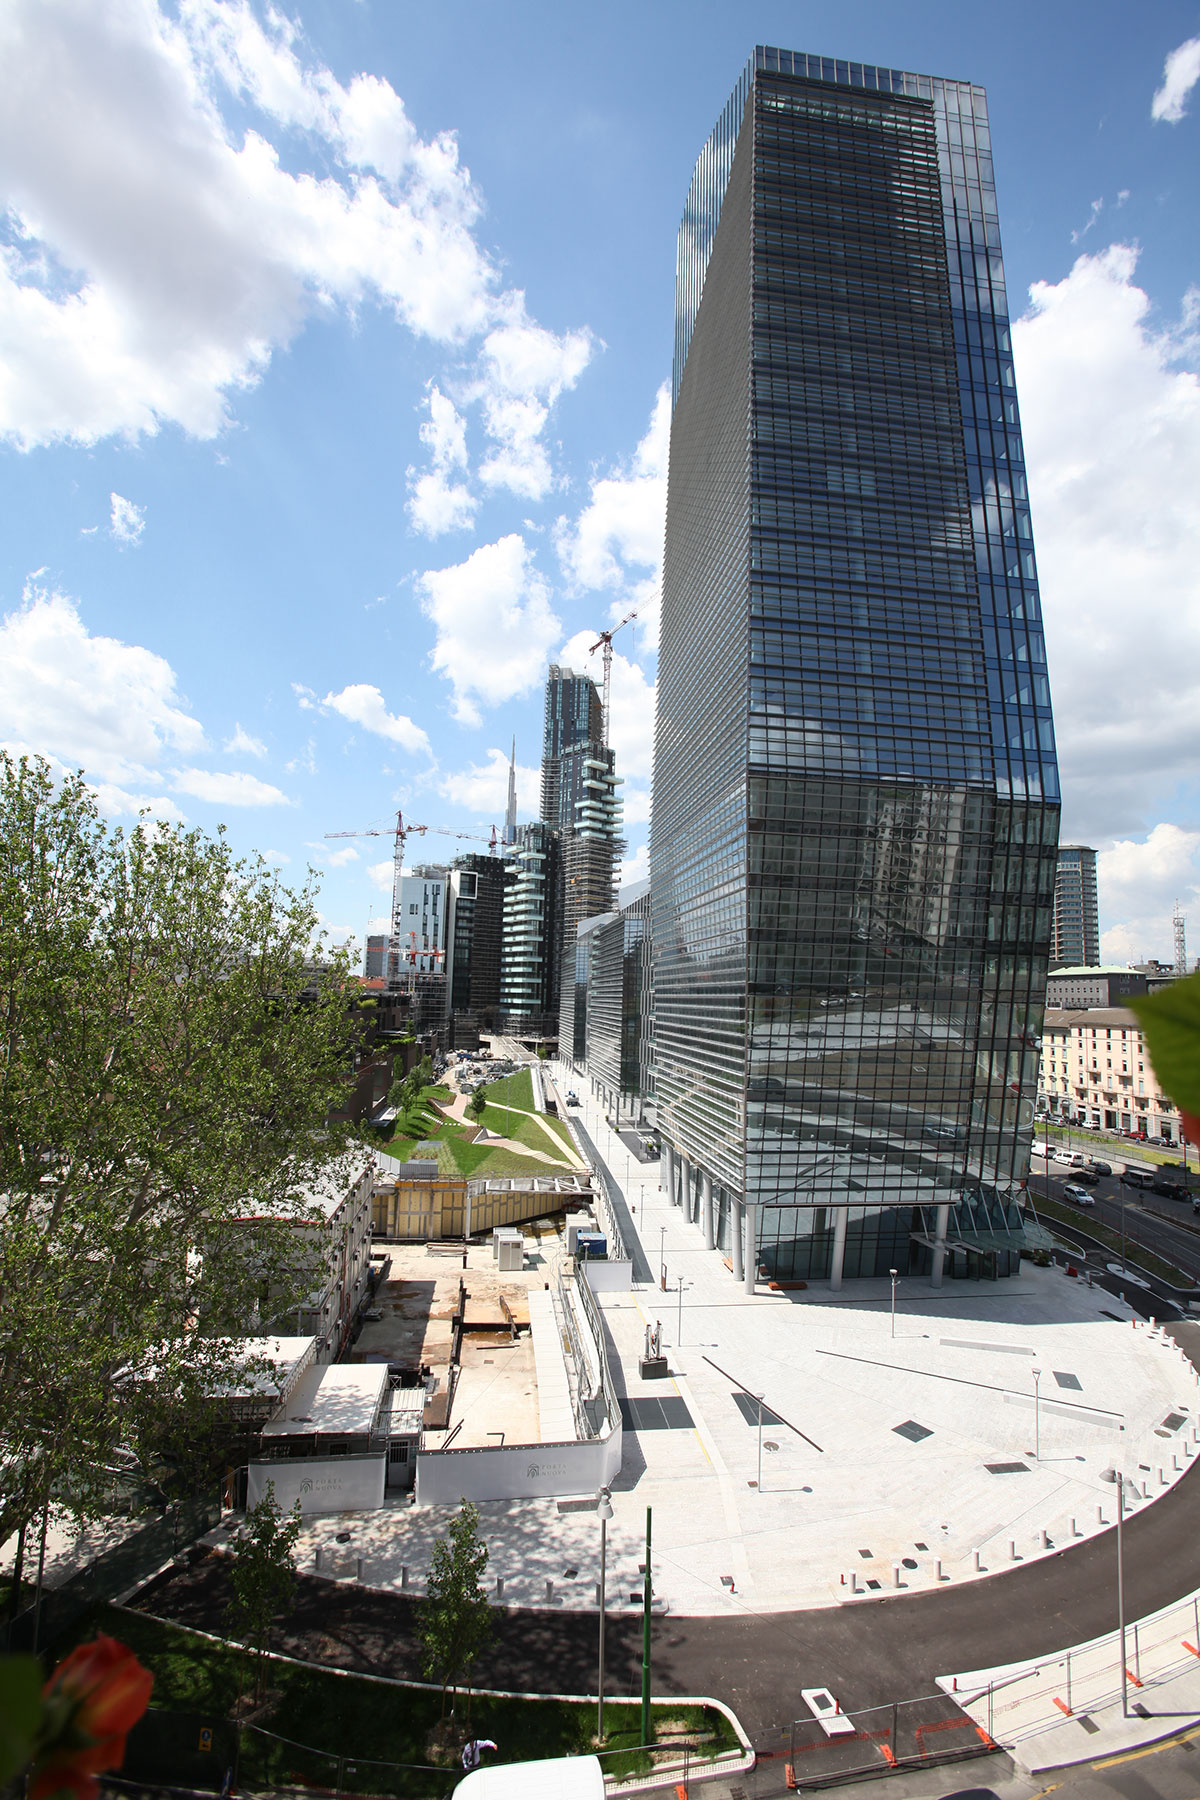 Porta Nuova Varesine - Business District Varesine